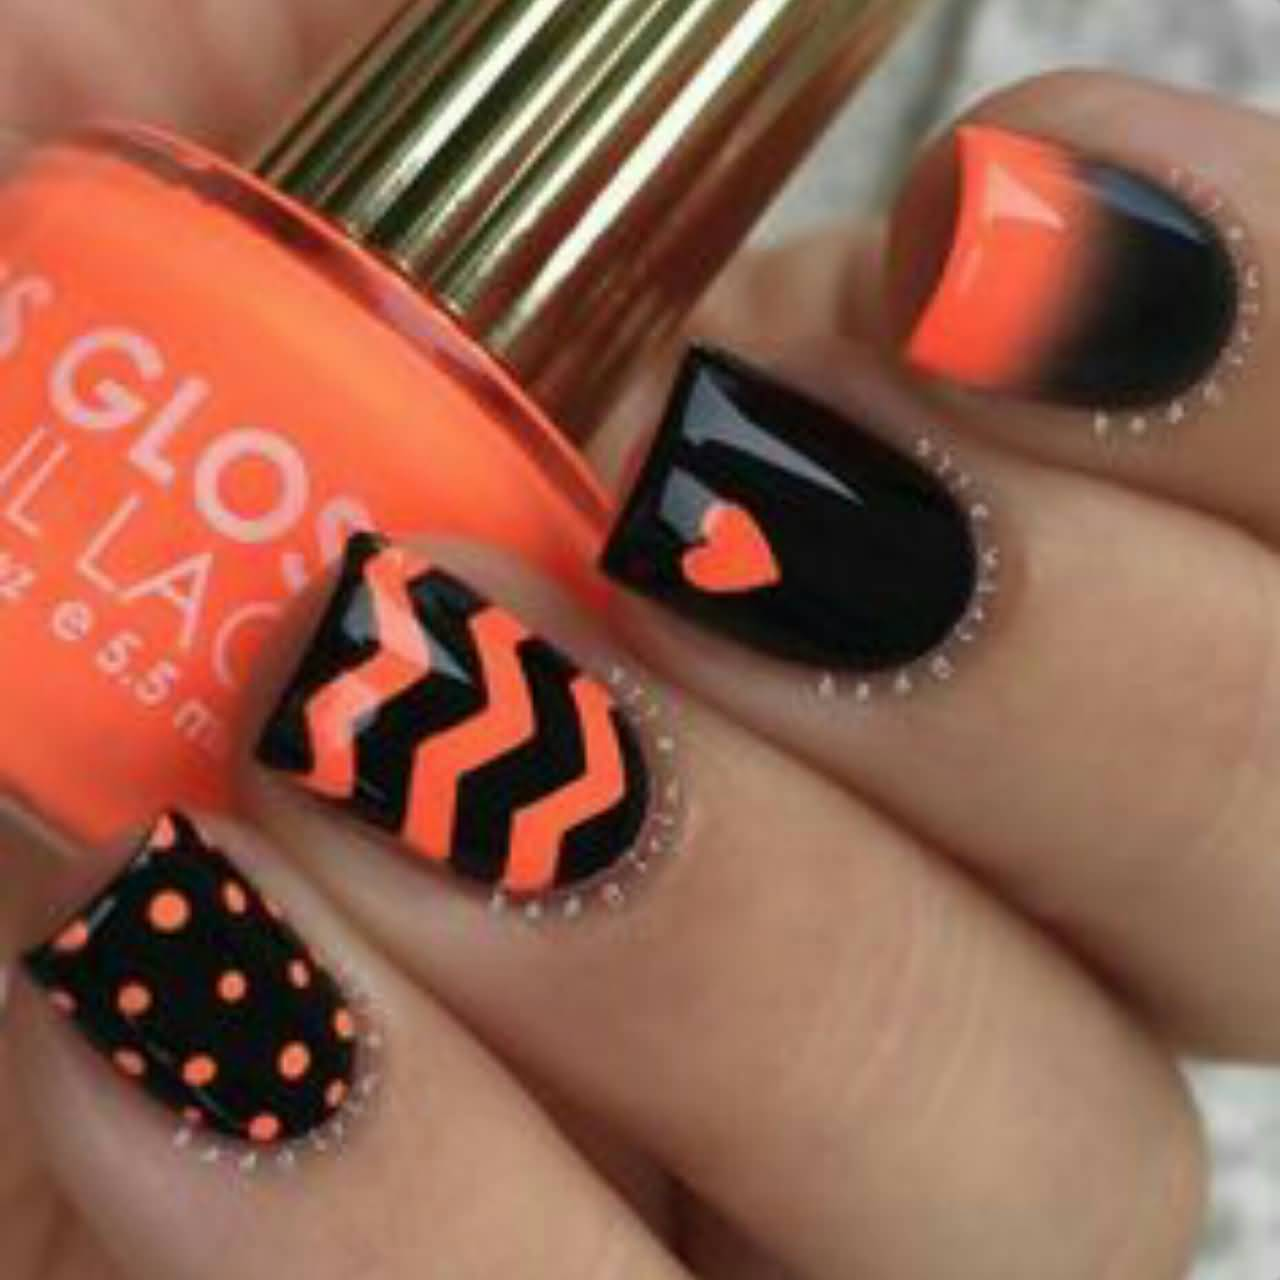 Nail Art Ideas: 60 Stylish Orange And Black Nail Art Design Ideas